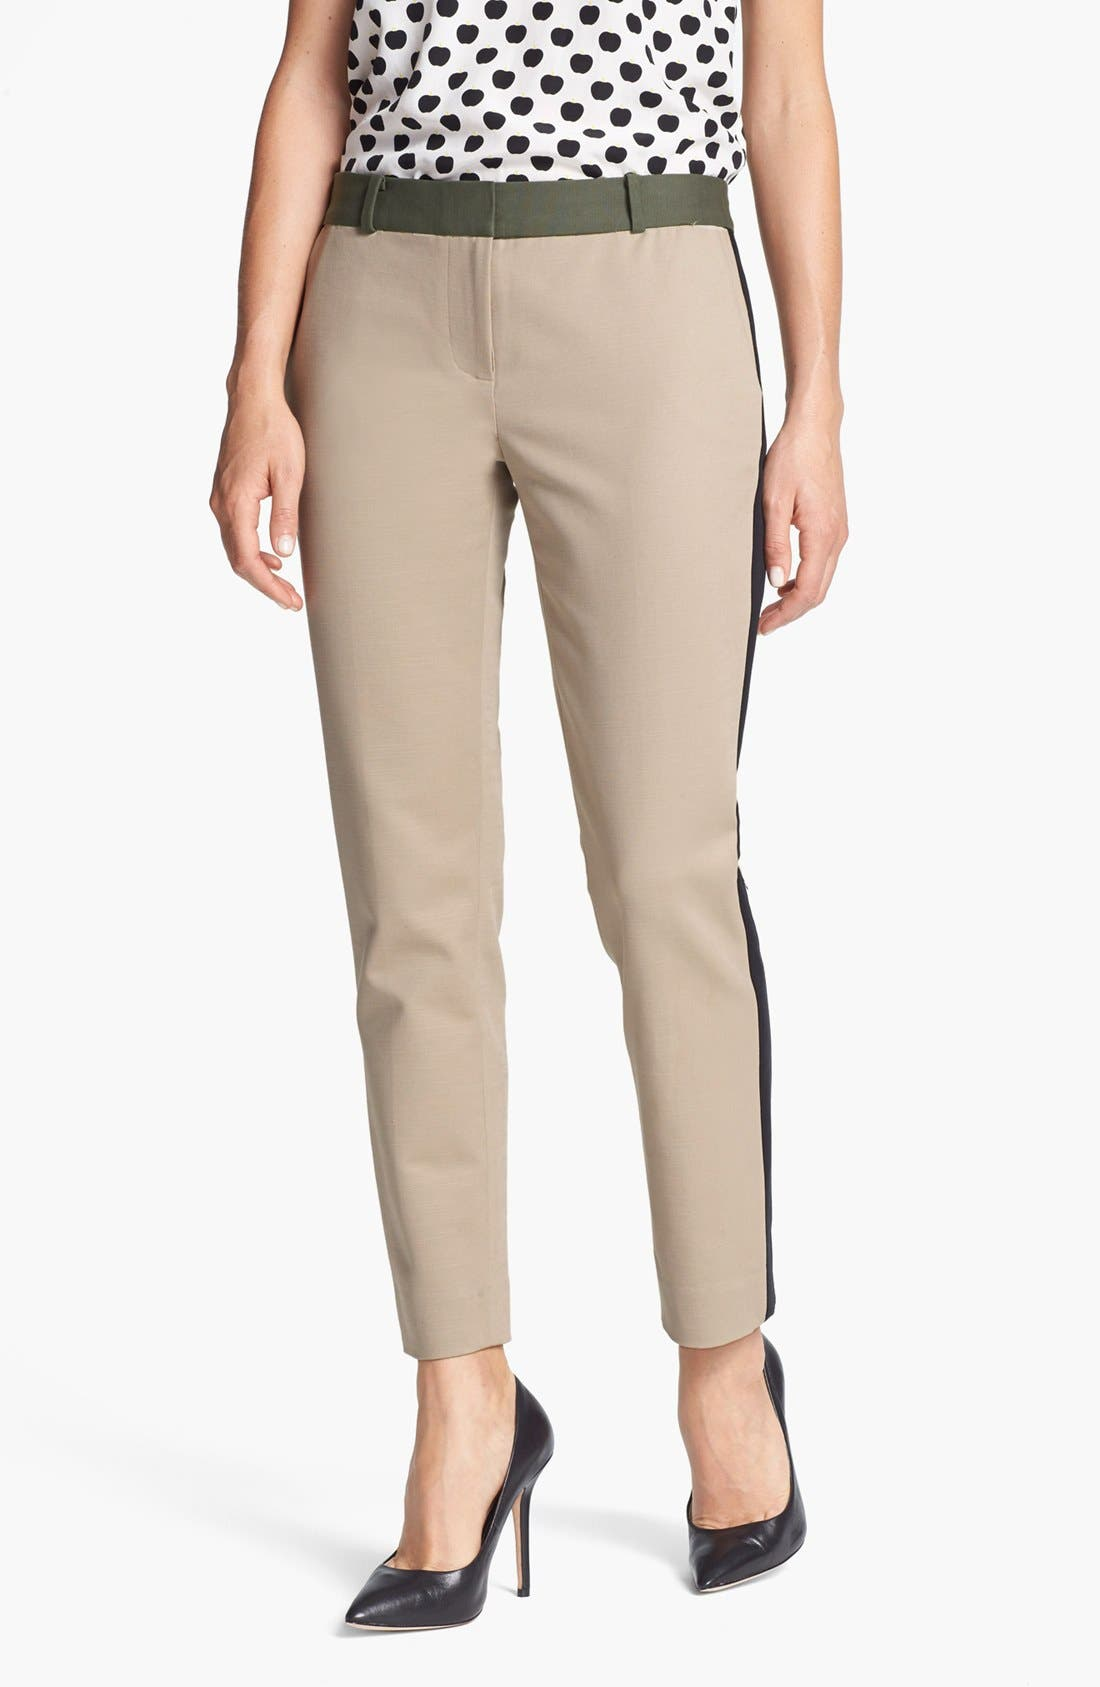 Alternate Image 1 Selected - kate spade new york 'caden' stretch cotton pants